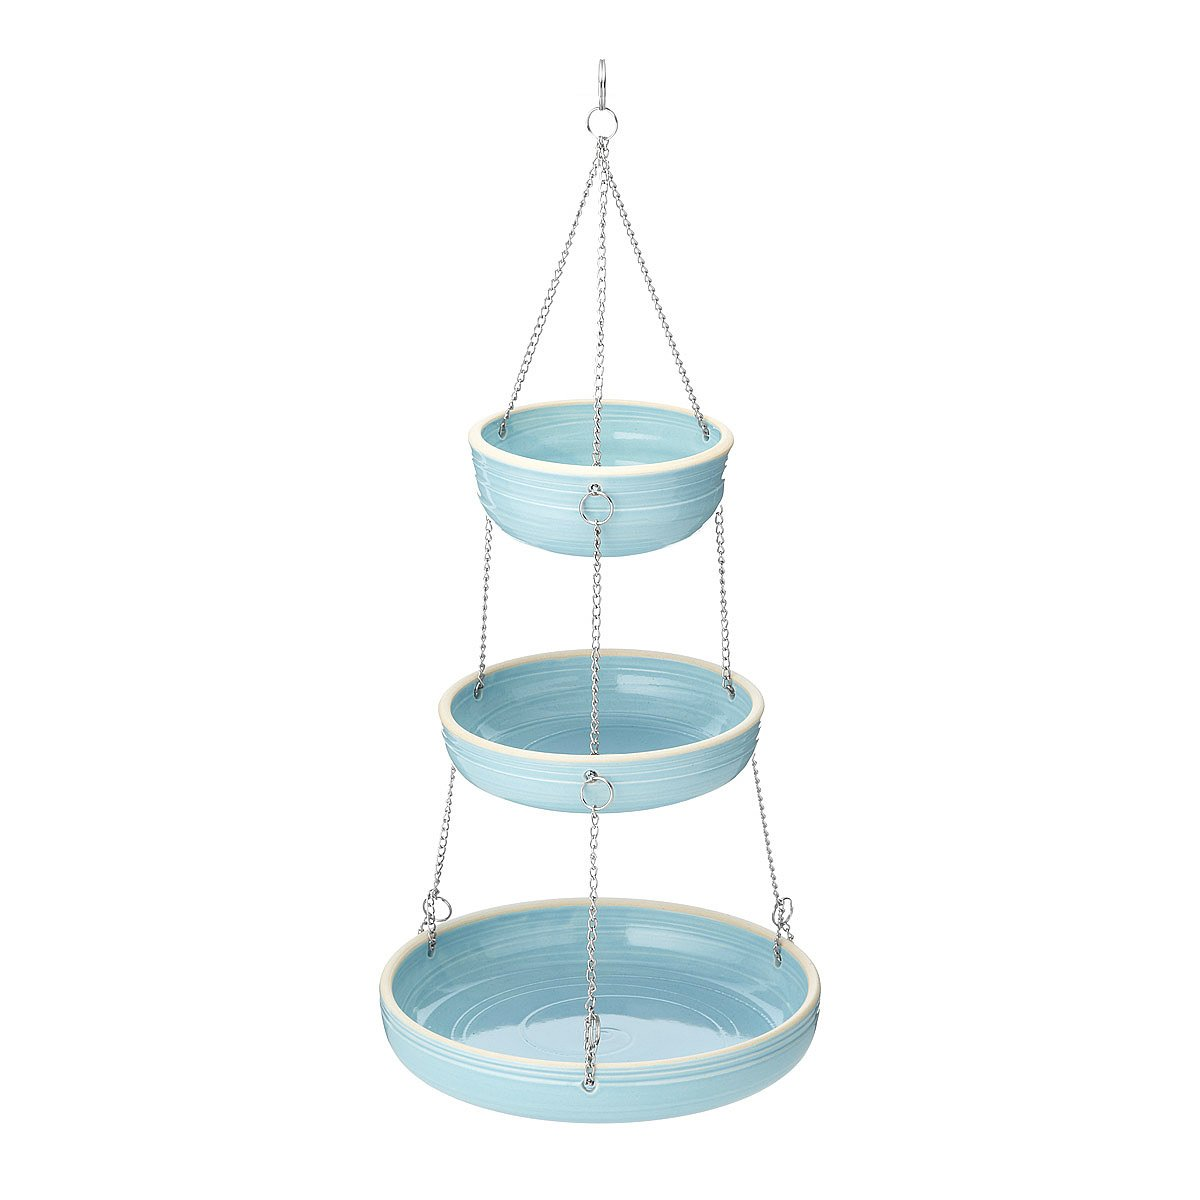 Stoneware 3 Tiered Hanging Baskets | fruit hanger, sculpture ...